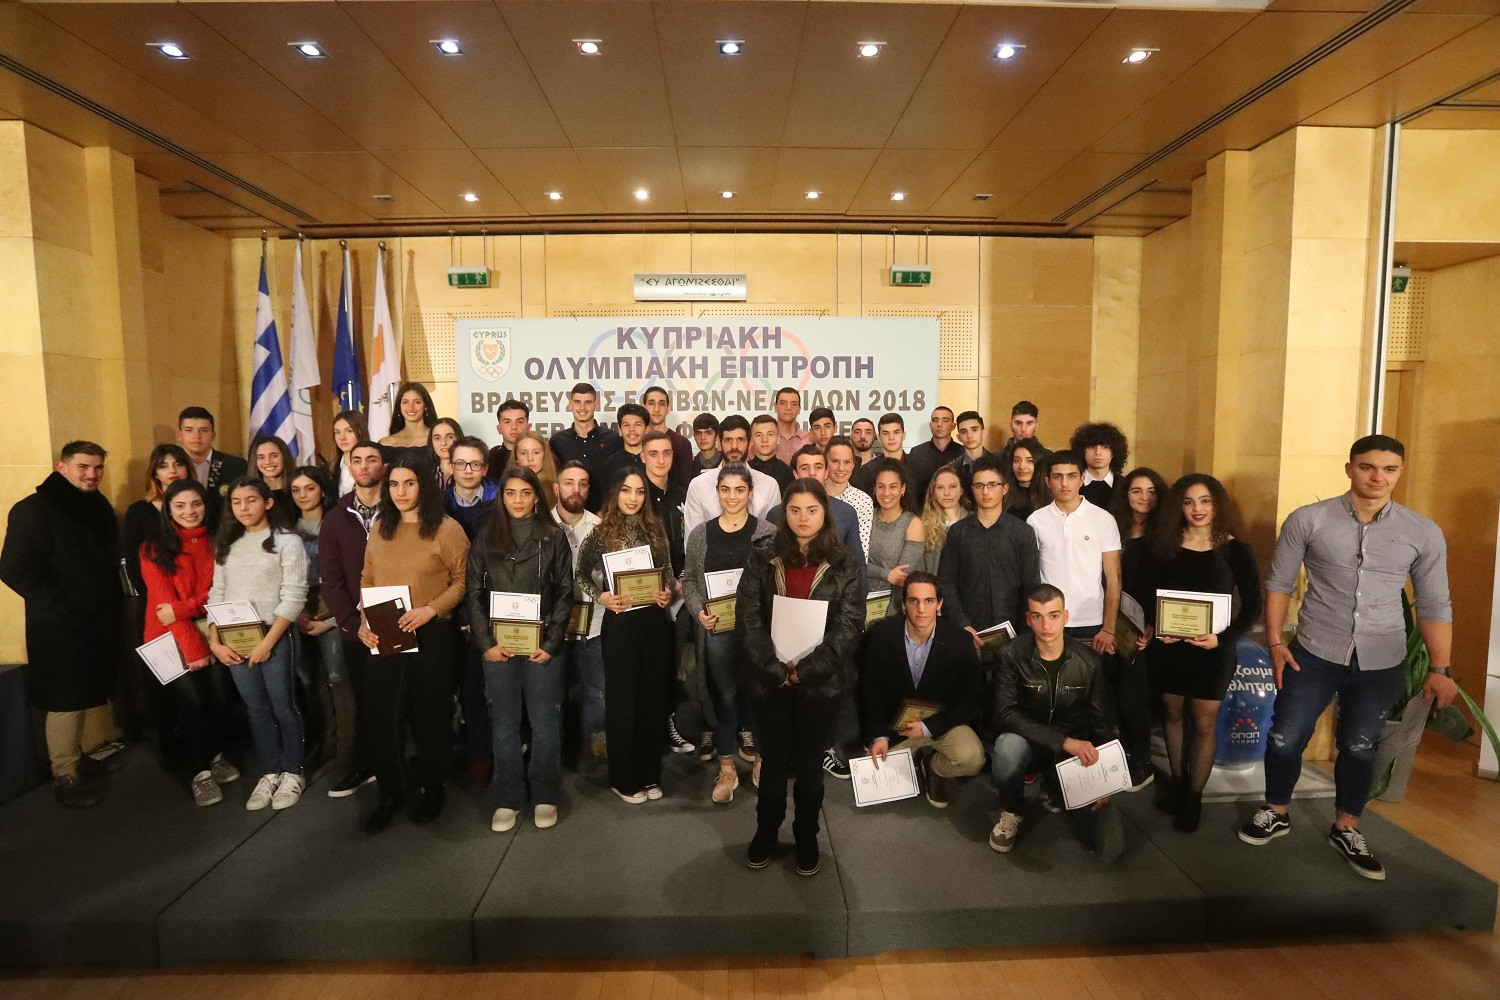 The Cyprus Olympic Committee hosted it's annual awards ceremony for 2018 at their Olympic House ©KOE